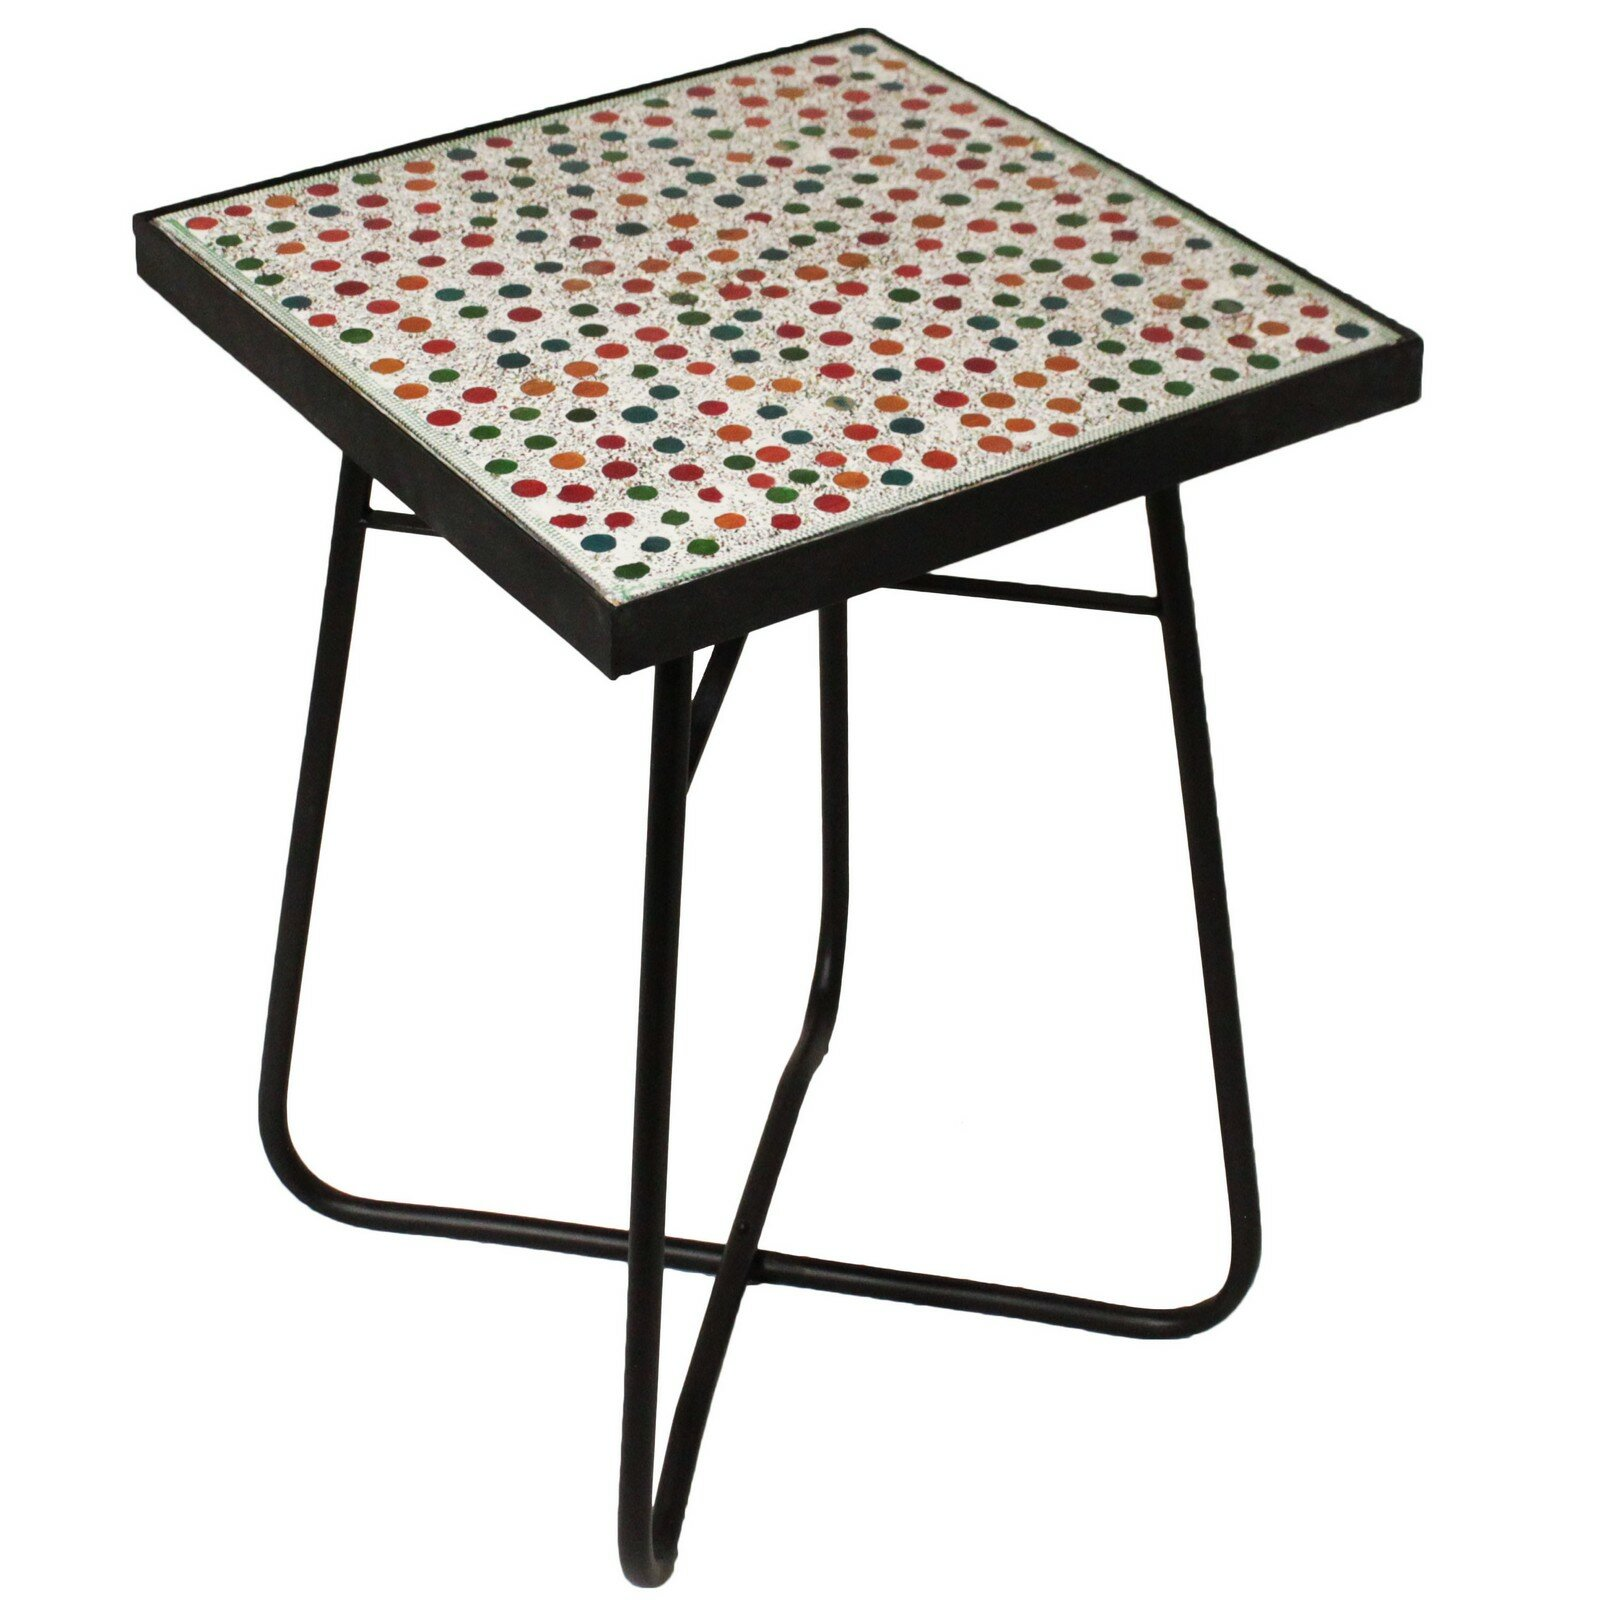 Attirant Urban Designs Color Mosaic End Table | Wayfair